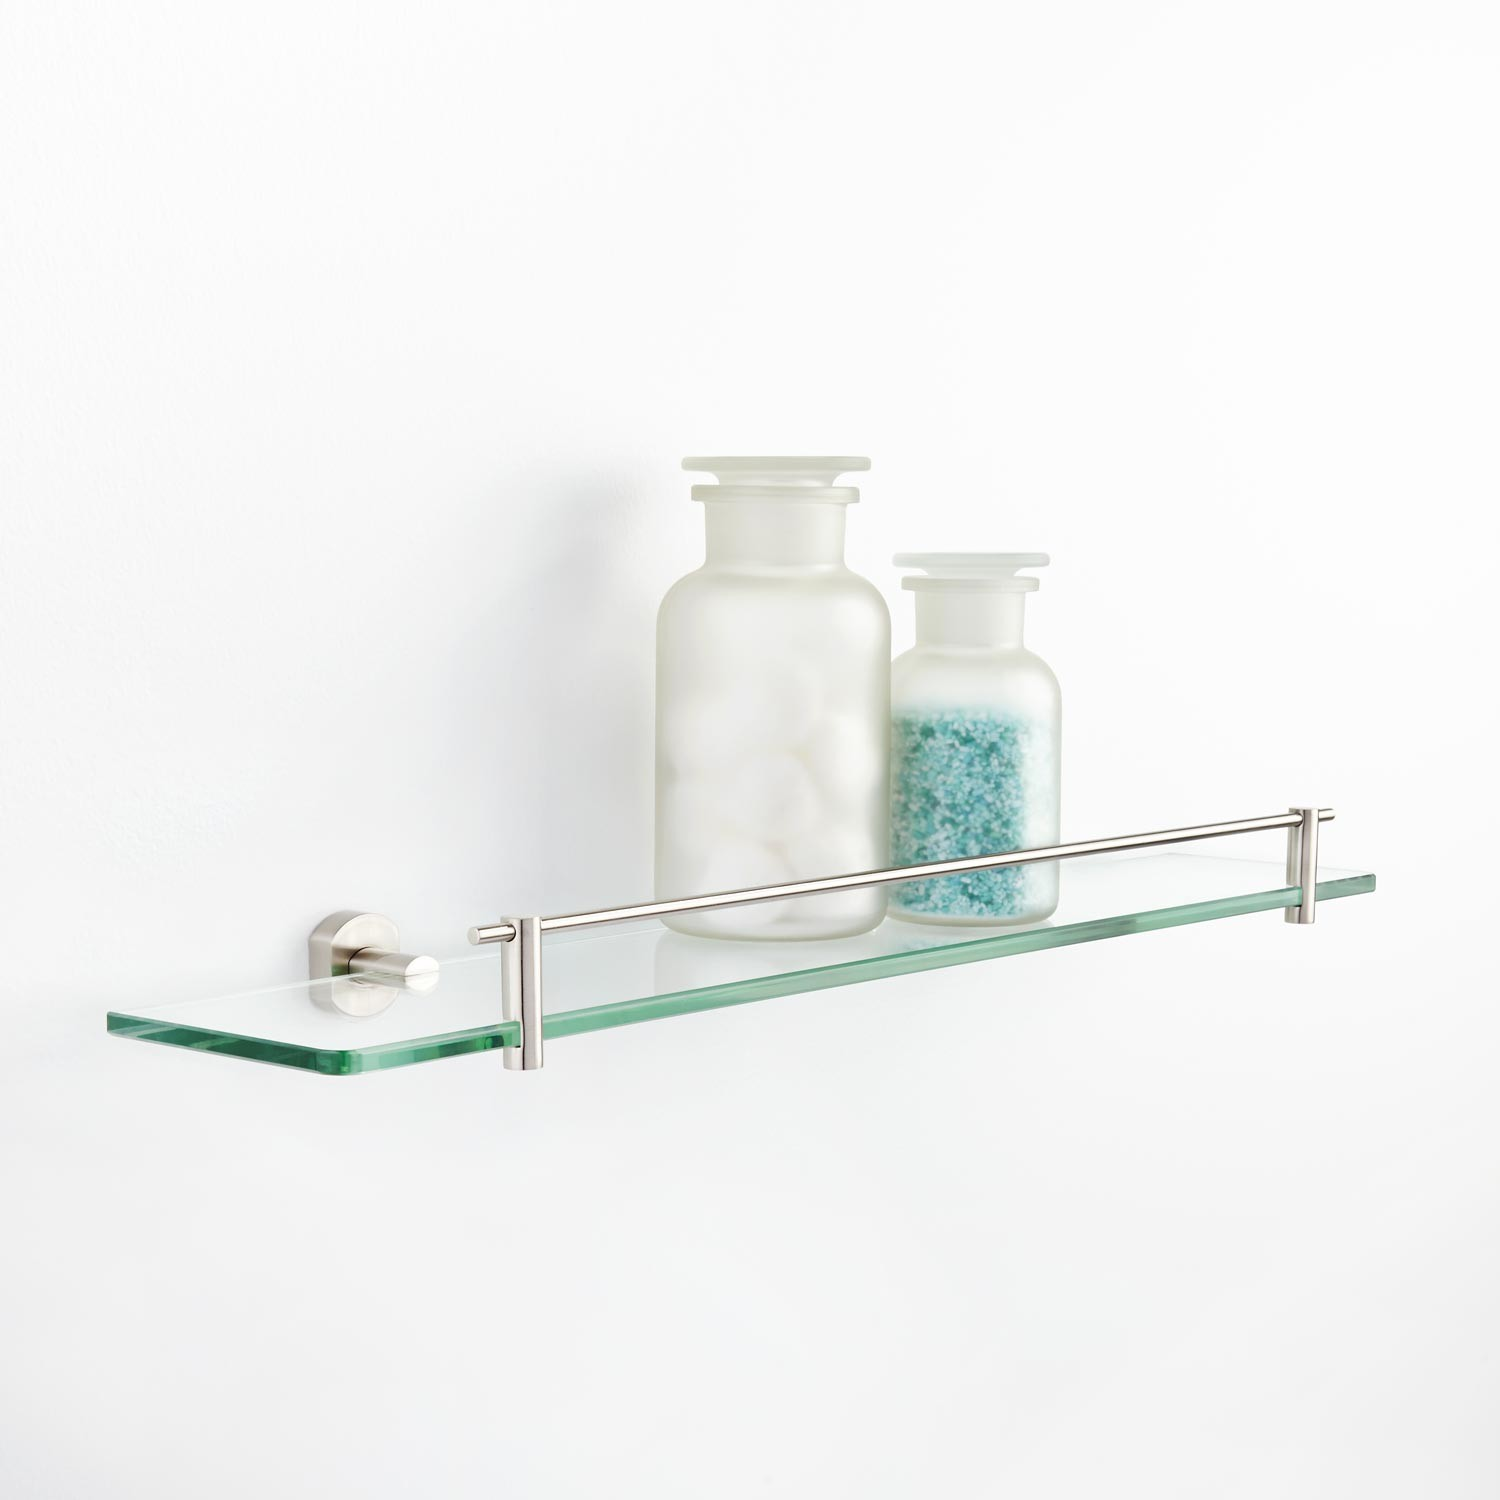 Chic Marlton Tempered Glass Shelf glass shelving for bathroom